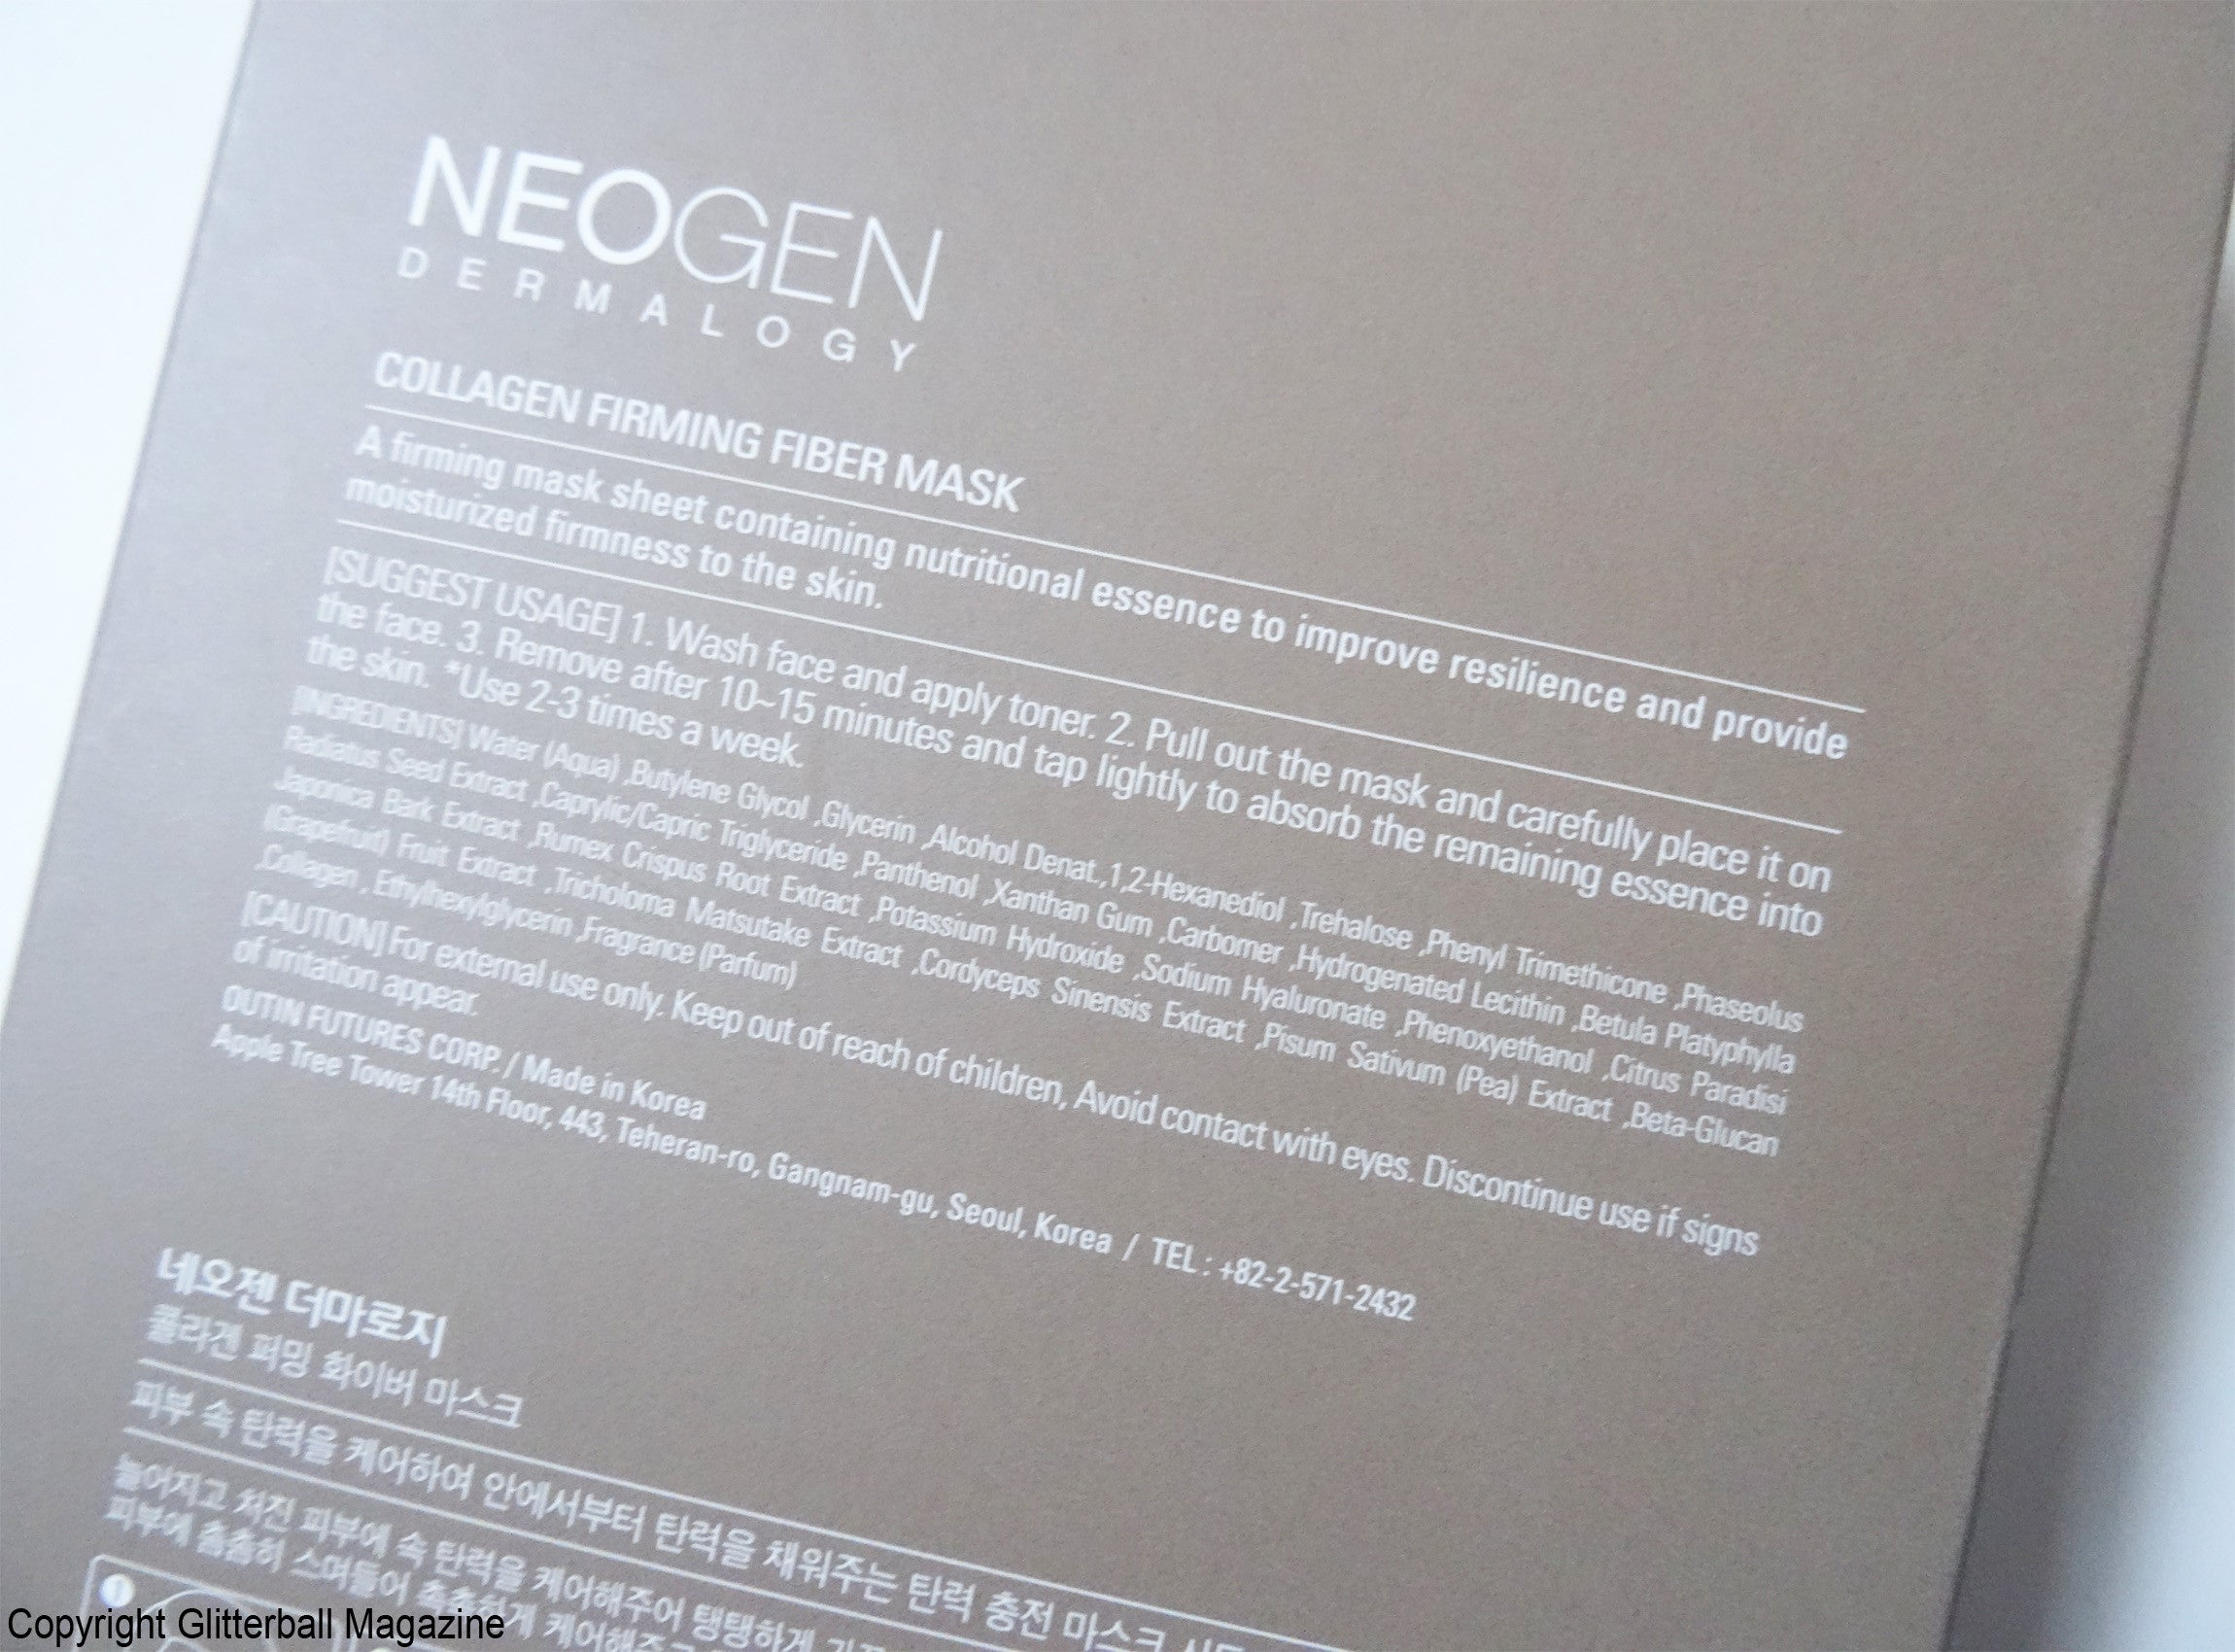 Neogen Collagen Firming Sheet Masks_4